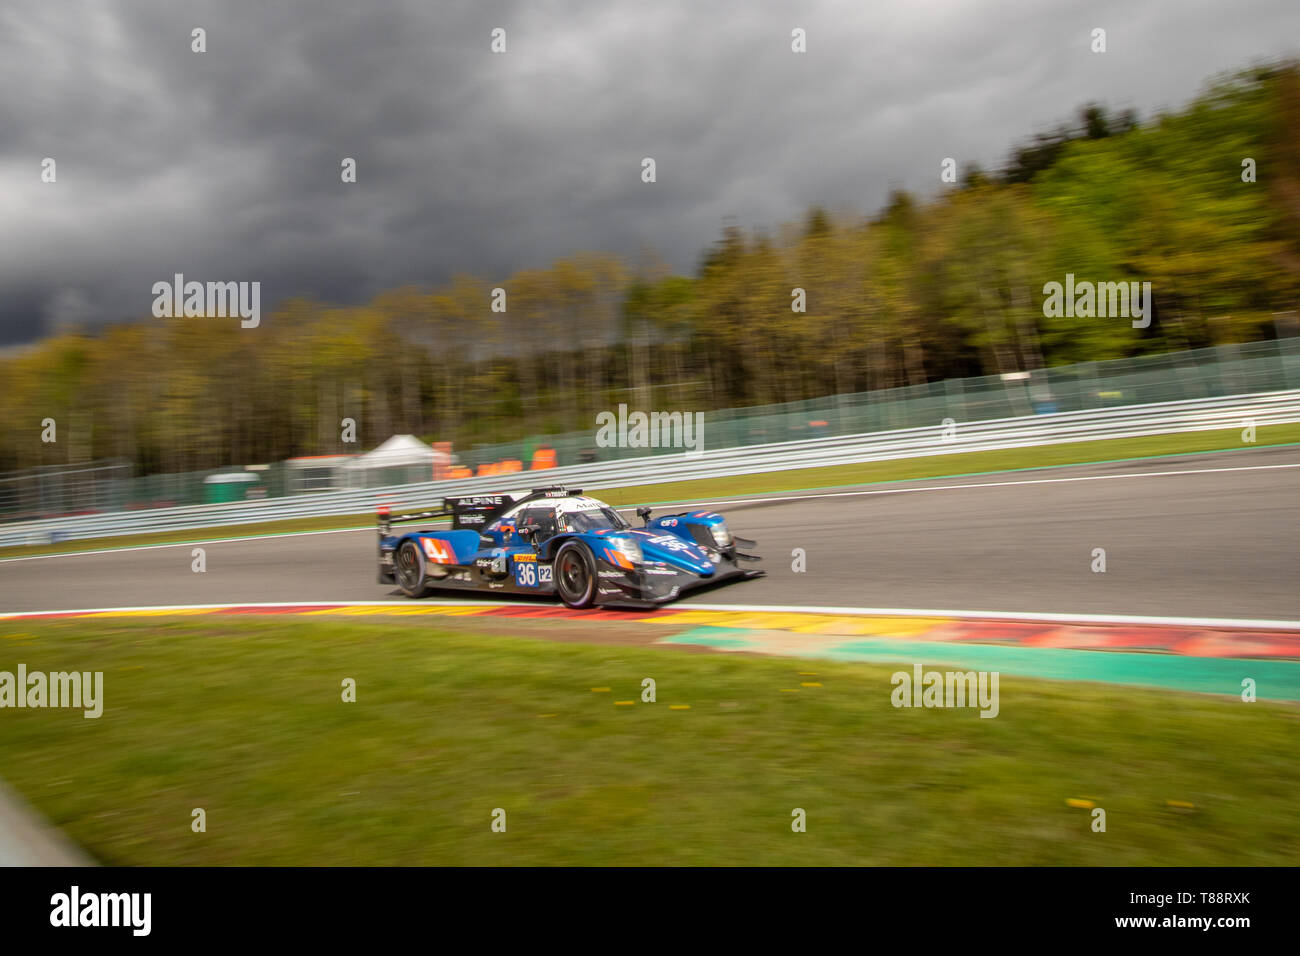 Signatech Alpine Matmut LMP2 heads into Les Combes chicane . WEC Total 6 Hours of Spa-Francorchamps 2019 Stock Photo